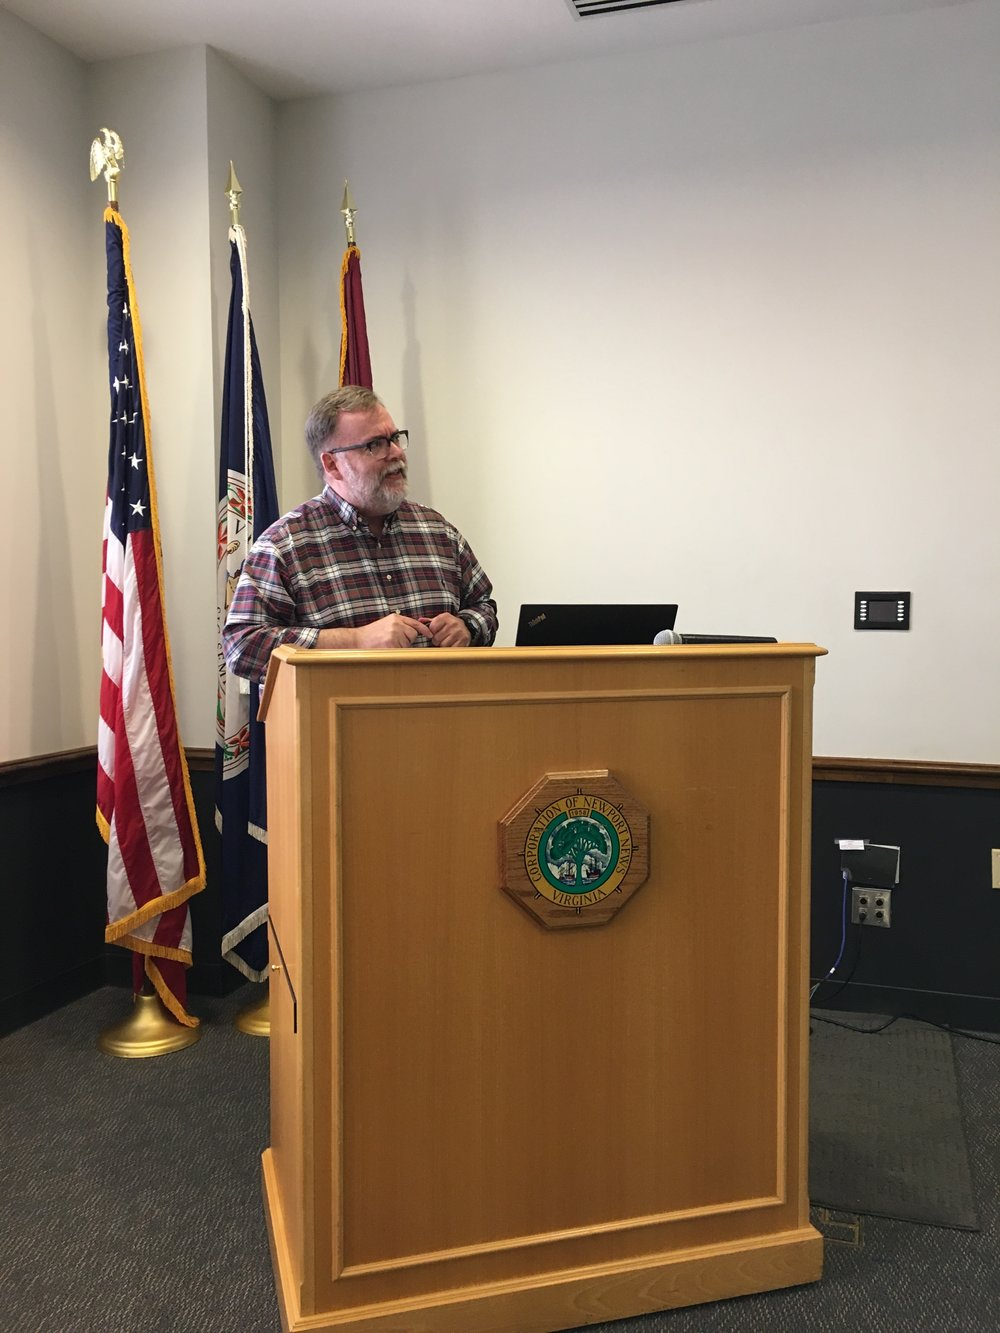 Tom Brockenbrough, Accomack County, presented on a recent CRS Cycle Visit with ISO